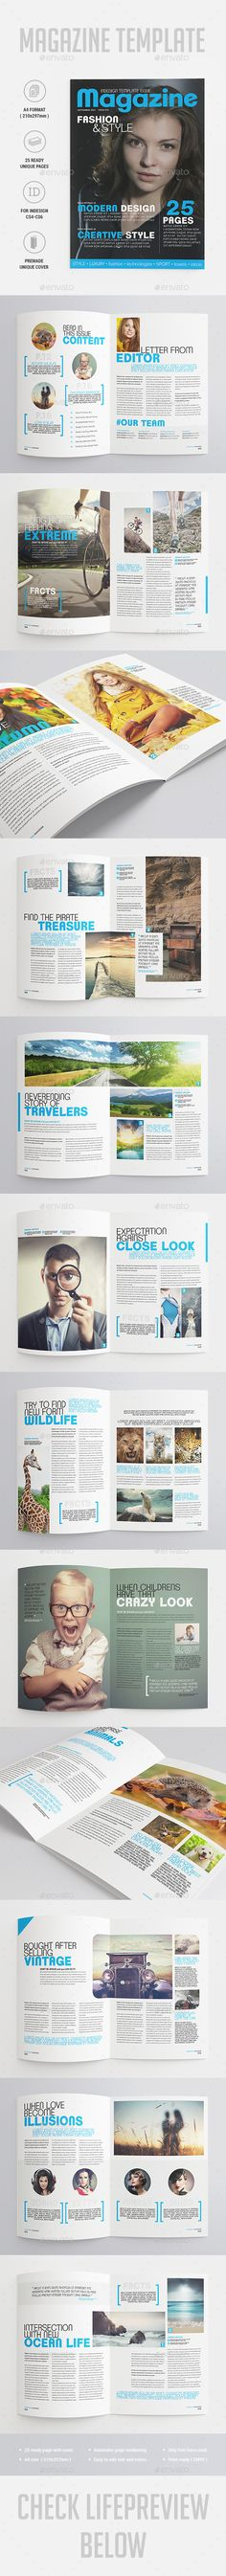 25 Pages Universal Magazine Vol74 by -BeCreative-  Universal Magazine Template: Professional and clean InDesign magazine template. Includes 25 pages for articles, interviews, galle